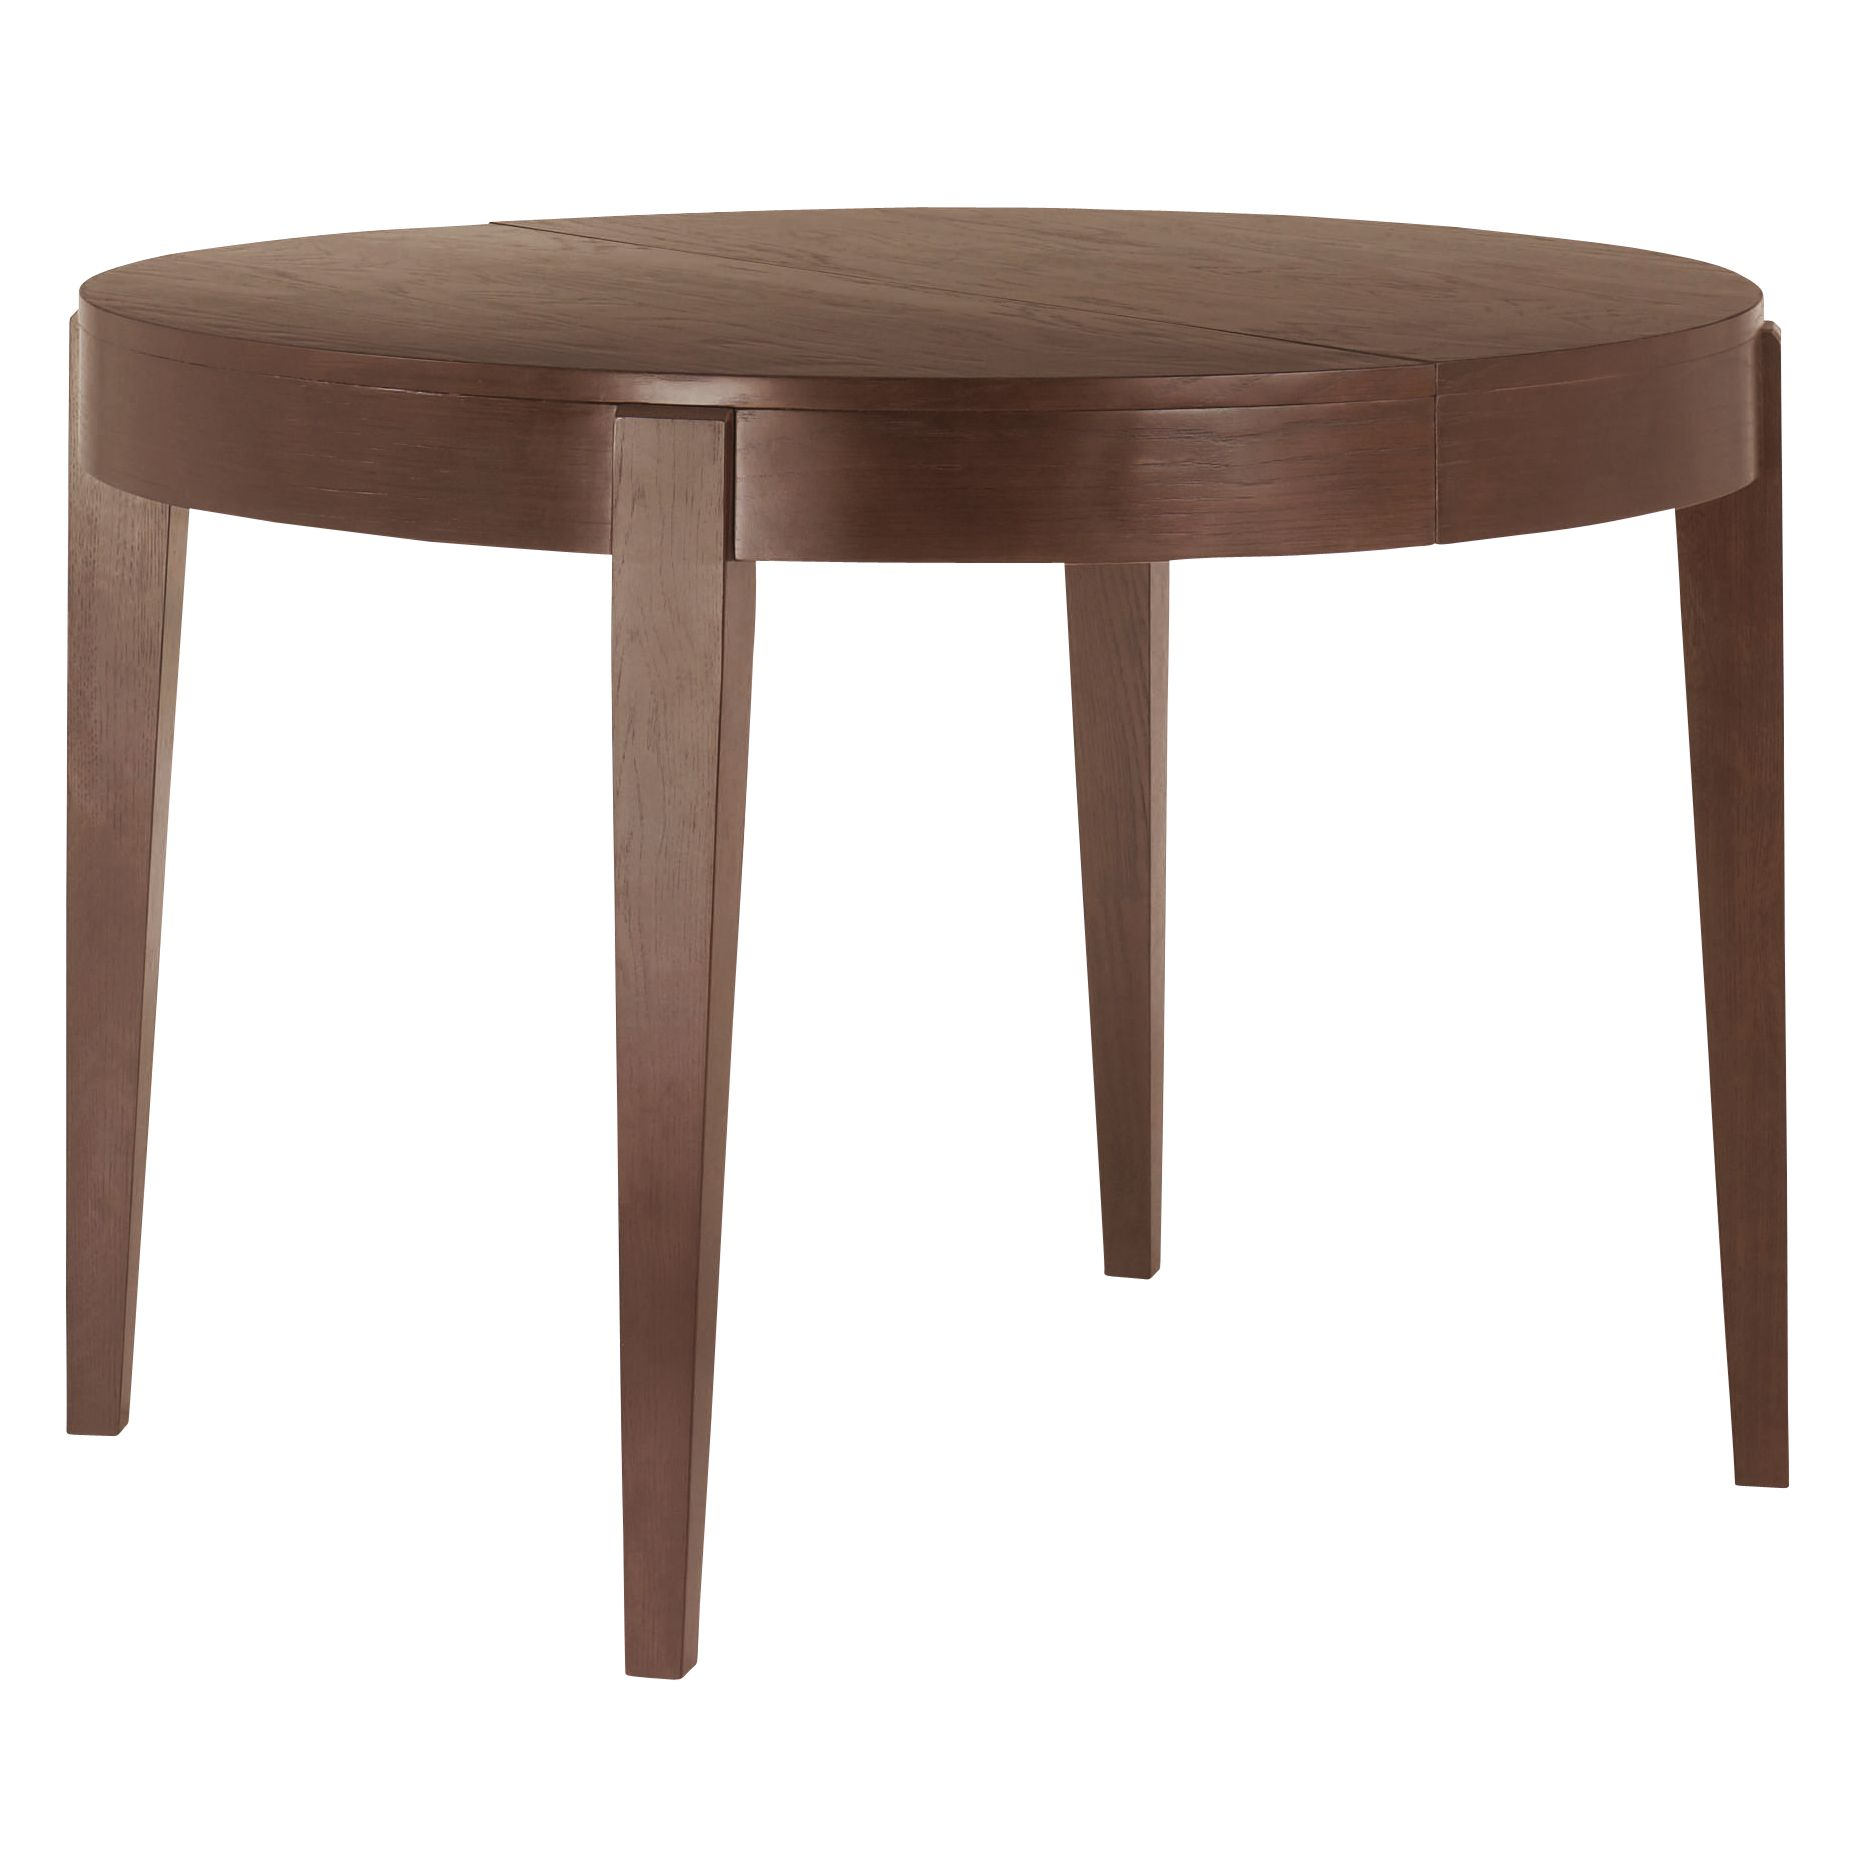 john lewis tables and chairs : 231094376 from www.comparestoreprices.co.uk size 1852 x 1852 jpeg 107kB